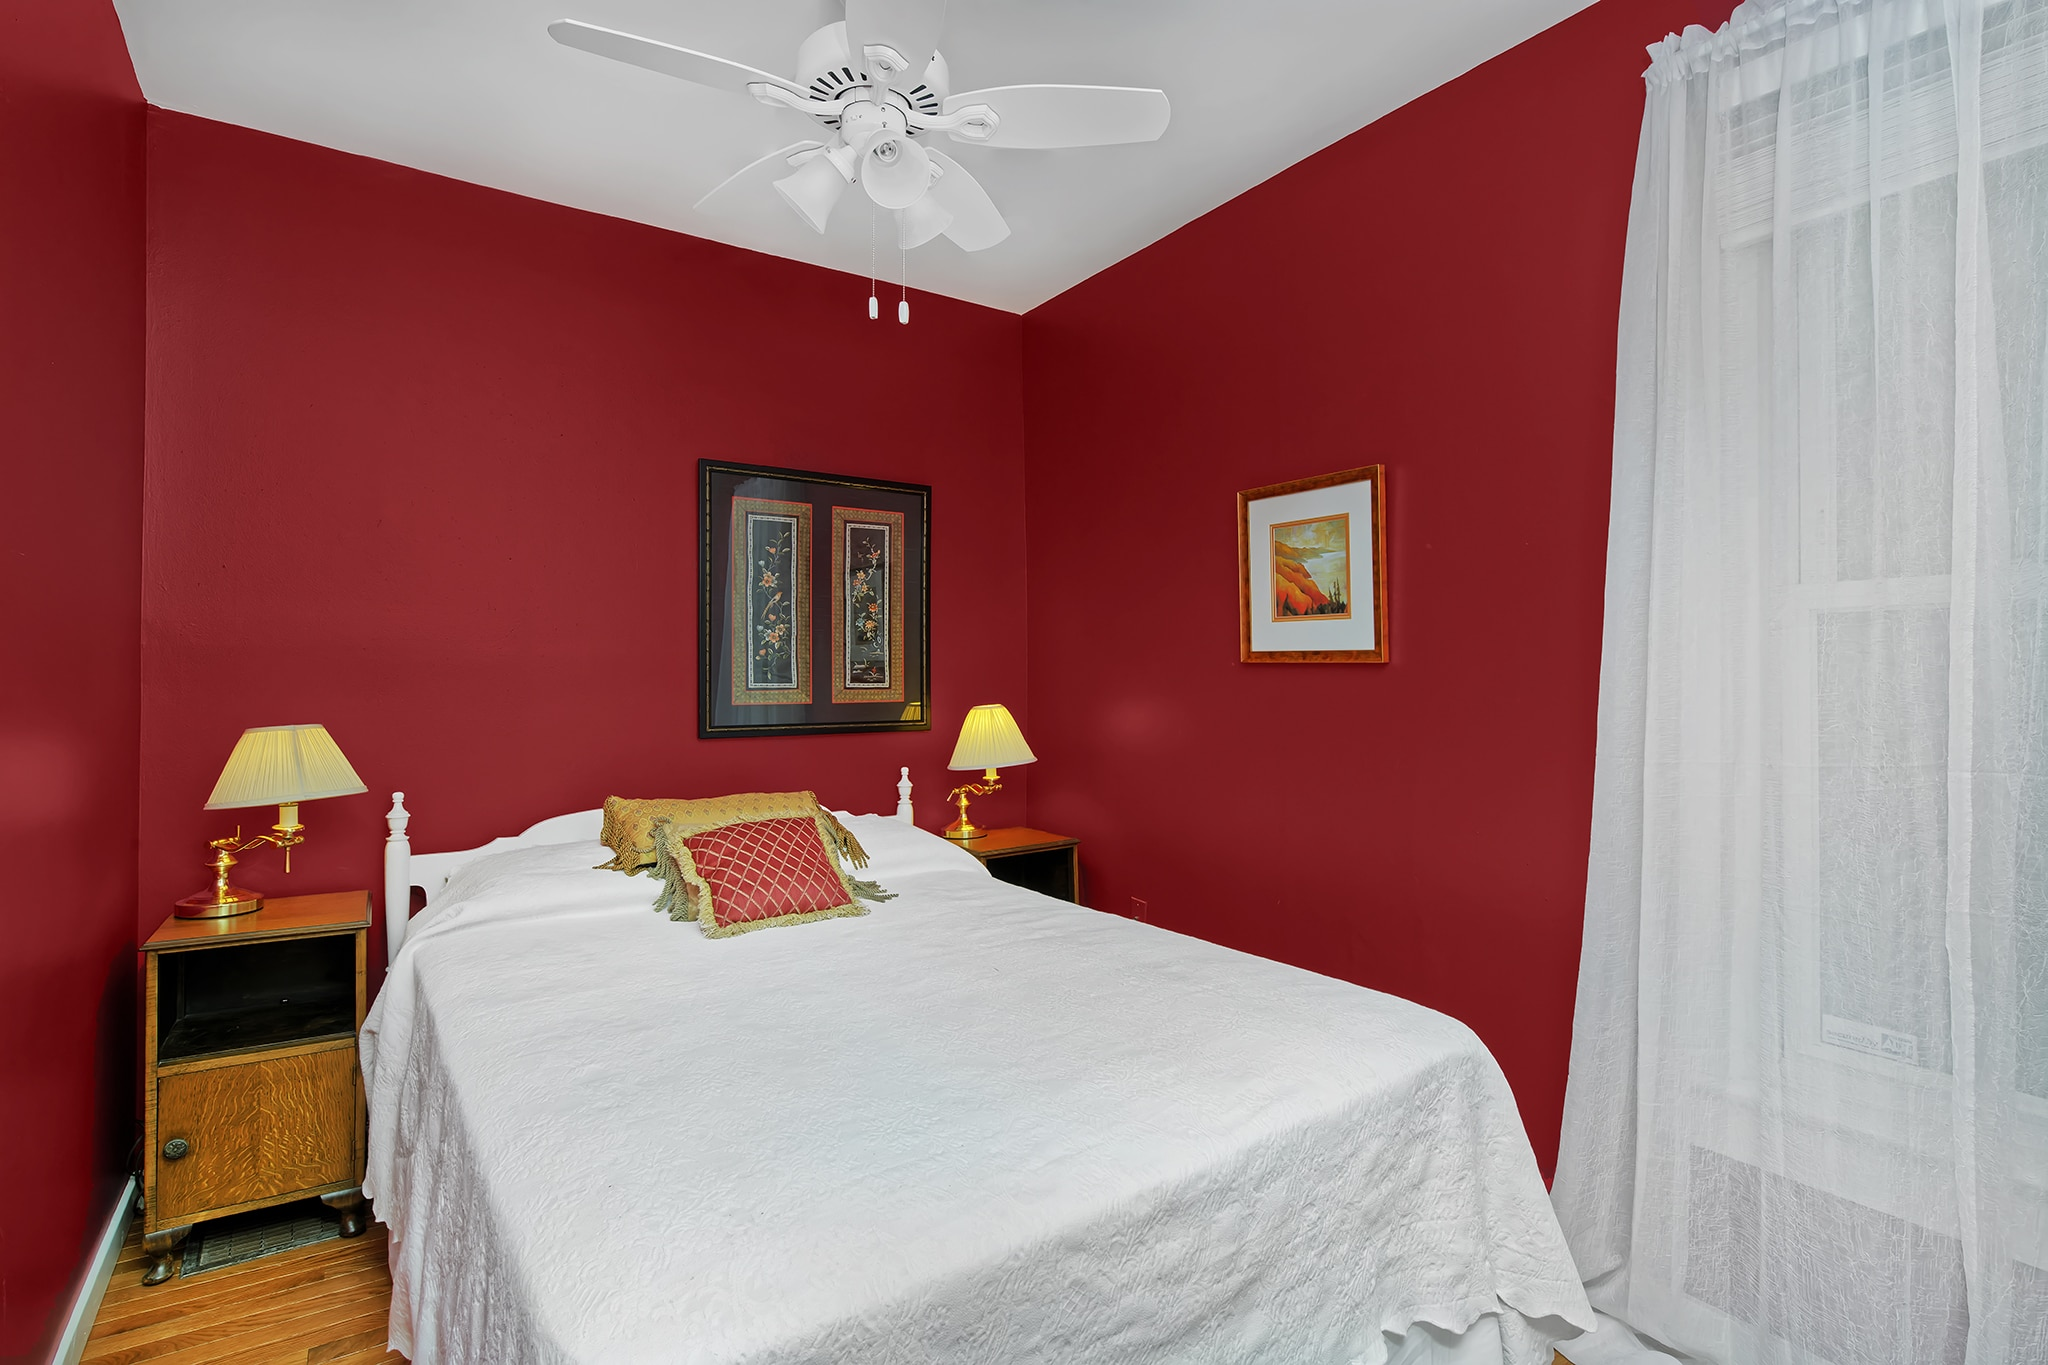 Washington Park Home With Extra Bedroom on main floor, red walls, white ceiling with ceiling fan, hardwood floors